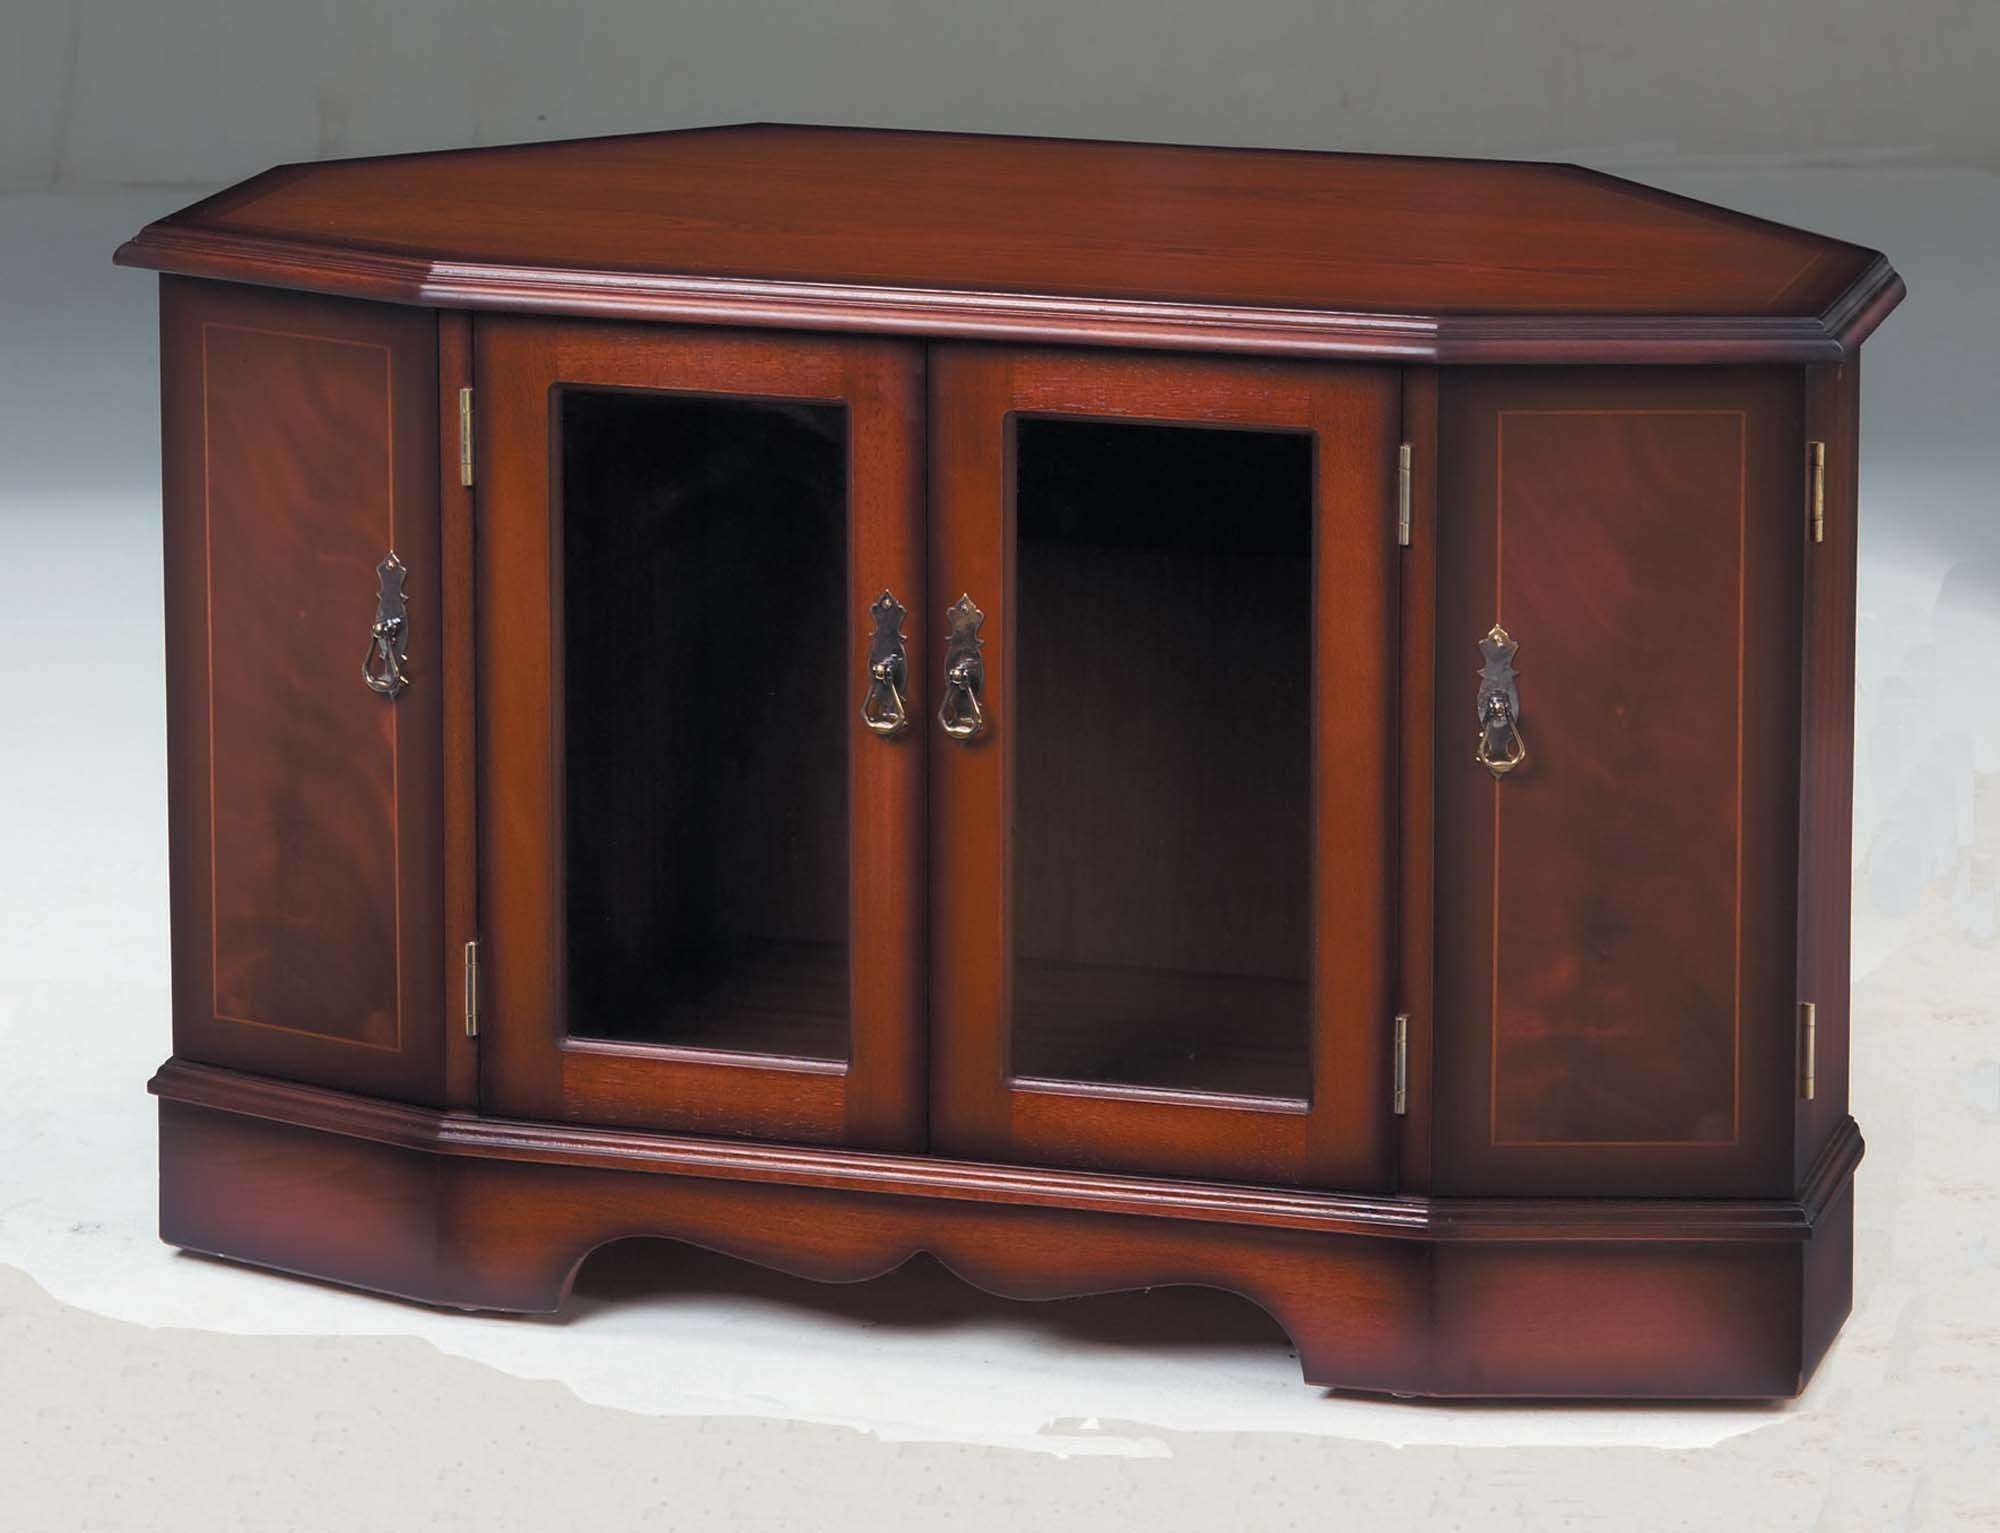 Strongbow Mahogany 1037 Corner Tv Cabinet | Tr Hayes – Furniture Throughout Mahogany Corner Tv Stands (View 13 of 15)